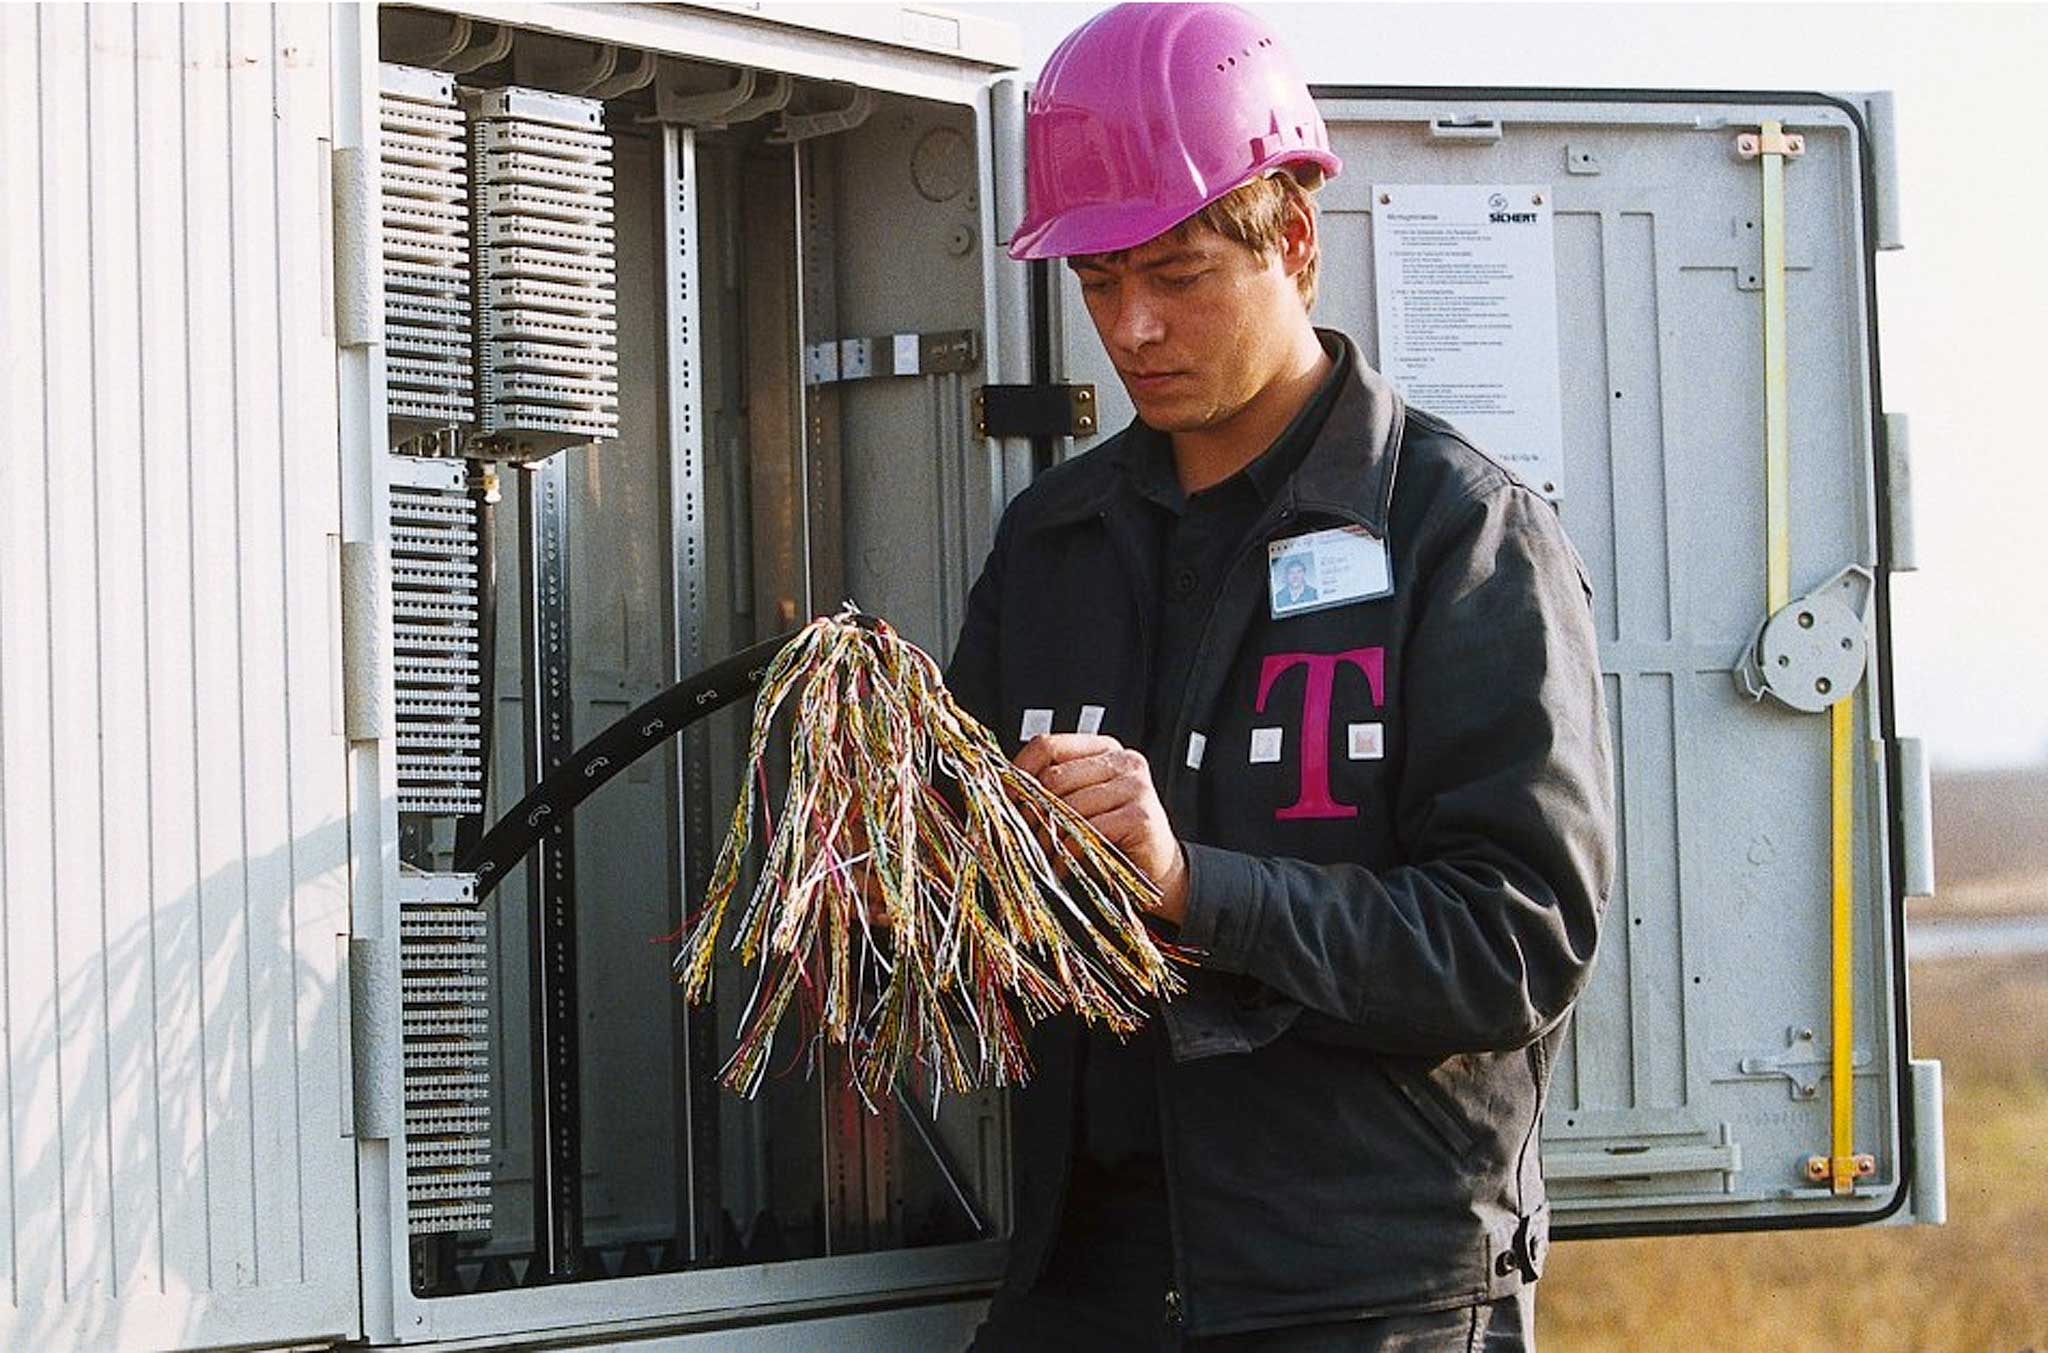 Kompetenz durch kompetente Kleidung  die Arbeitskleidung der Telekom ist ein Lehrbeispiel fr Coporate Fashion. Mglich wurde die Qualitt durch die Zusammenarbeit von Corporate Design, Mode Design, Telekom und Hersteller.